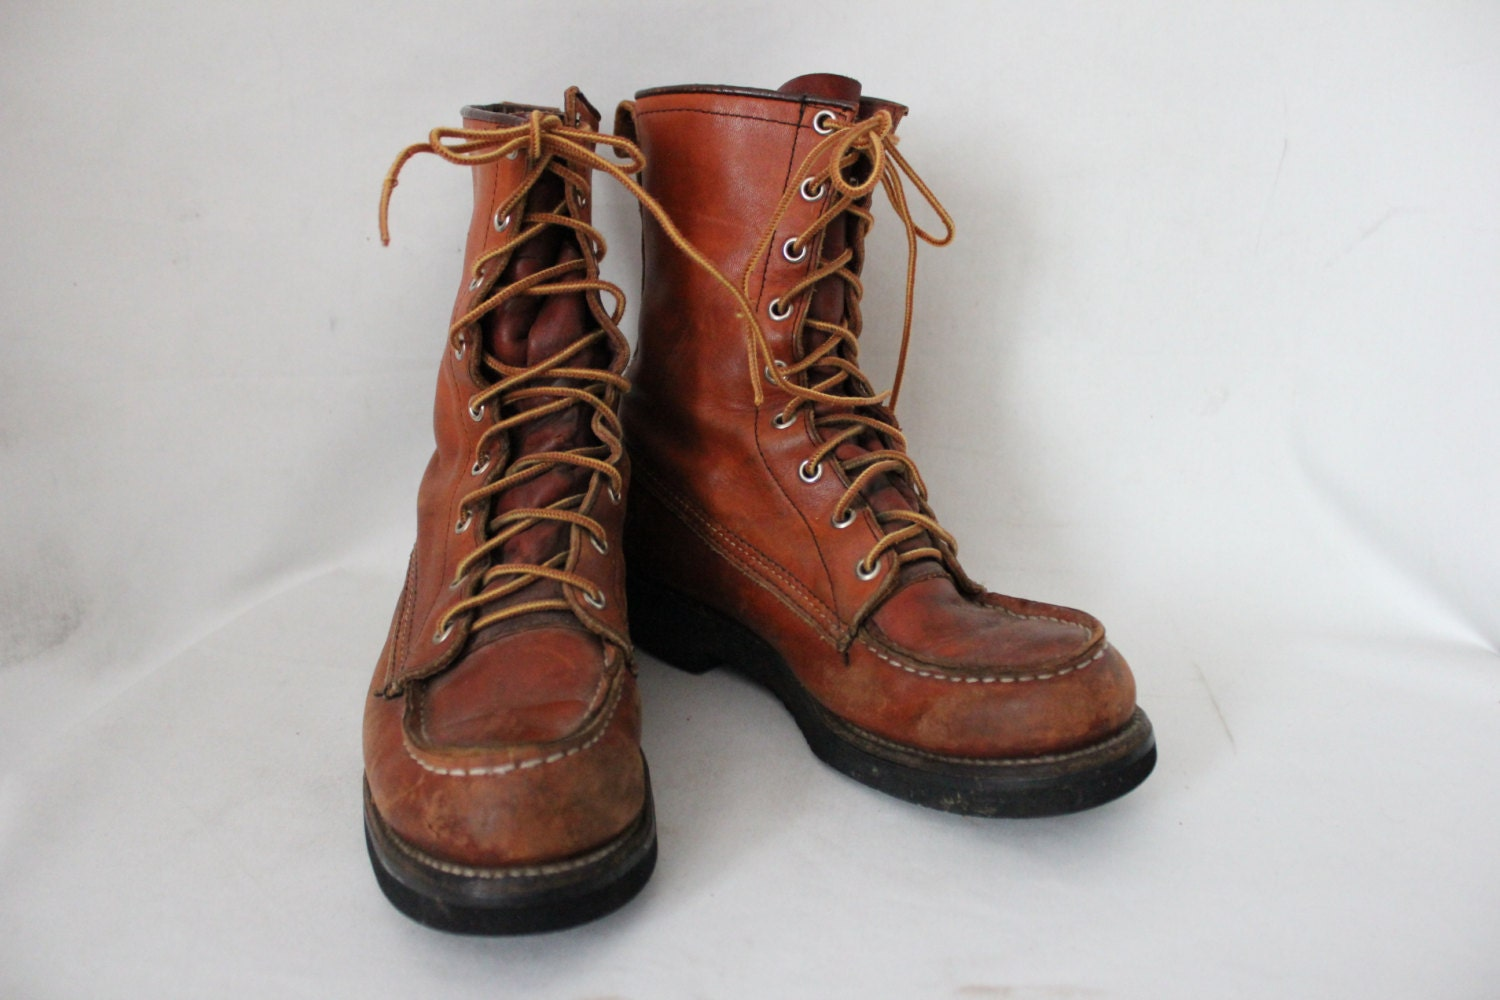 Vintage Eddie Bauer High Top Hiking Boots Women S 8